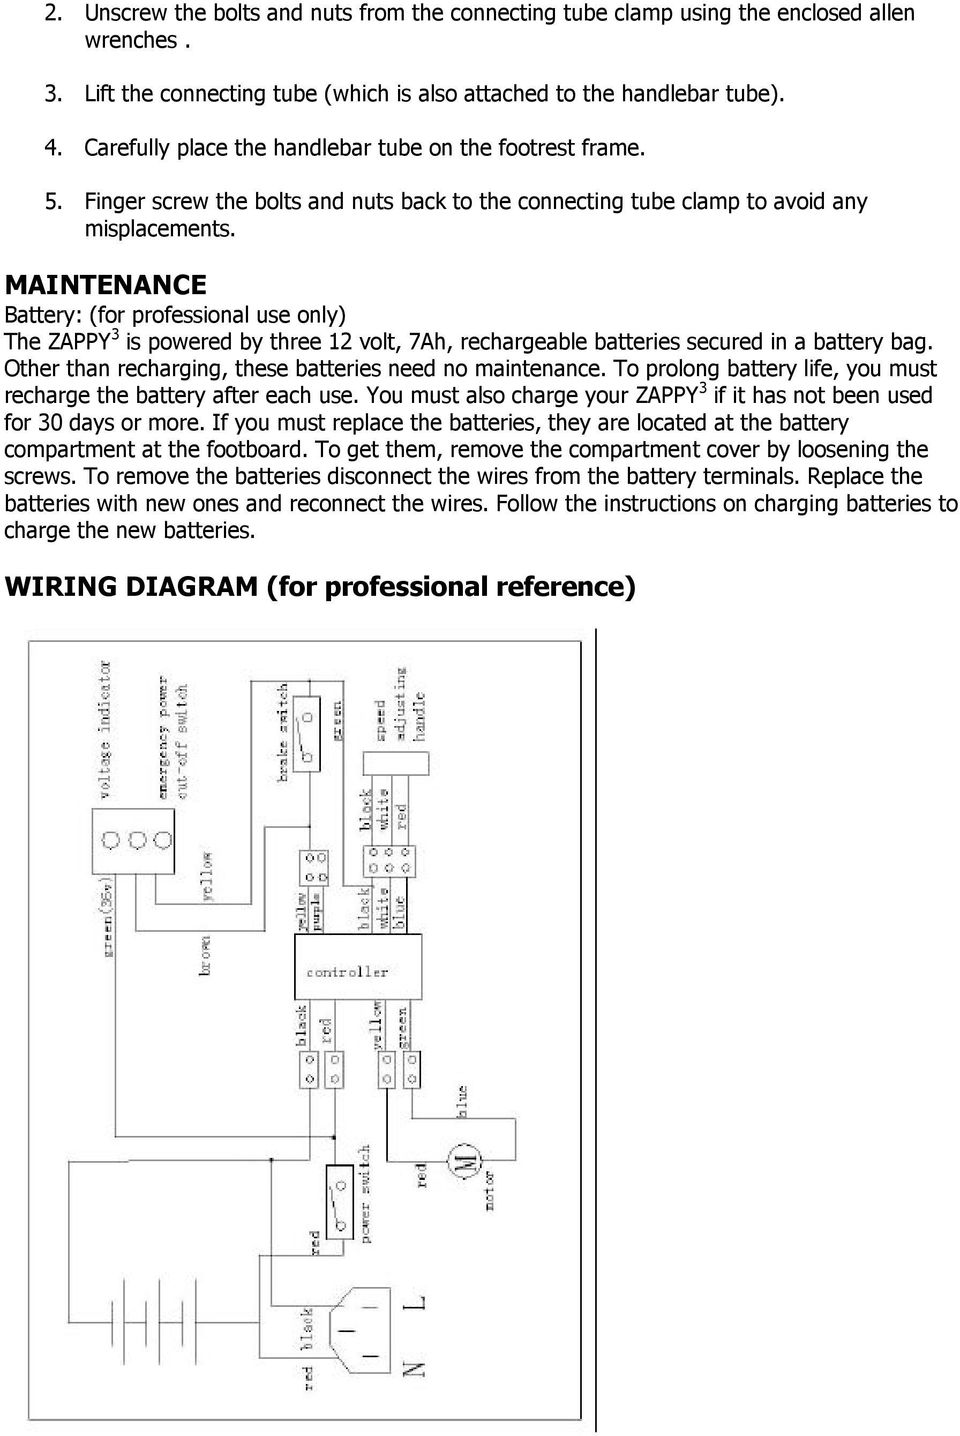 medium resolution of zappy 3 owner s manual read this manual completely before riding wiring diagram zappy 3 fo